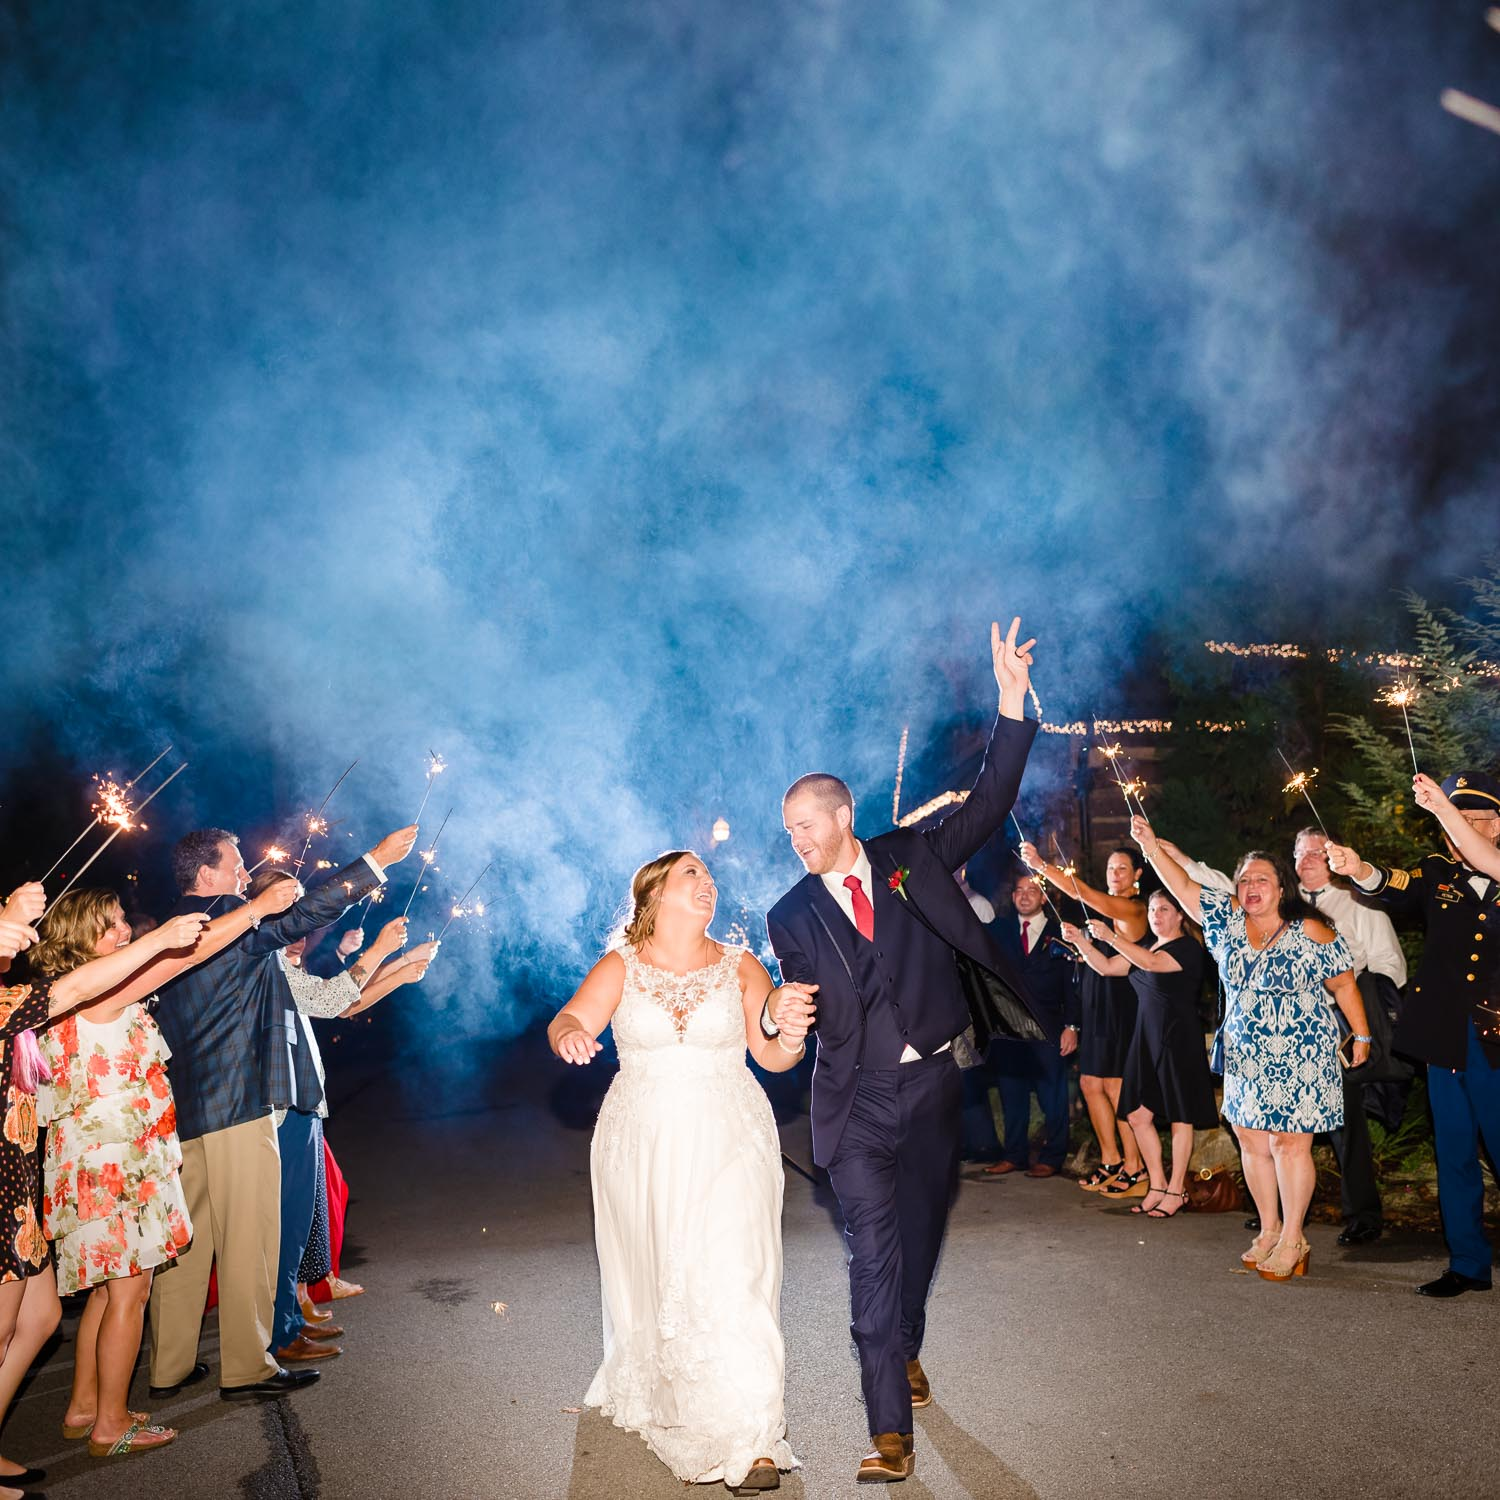 blue smoke from wedding sparklers and bride and groom danging under sparklers